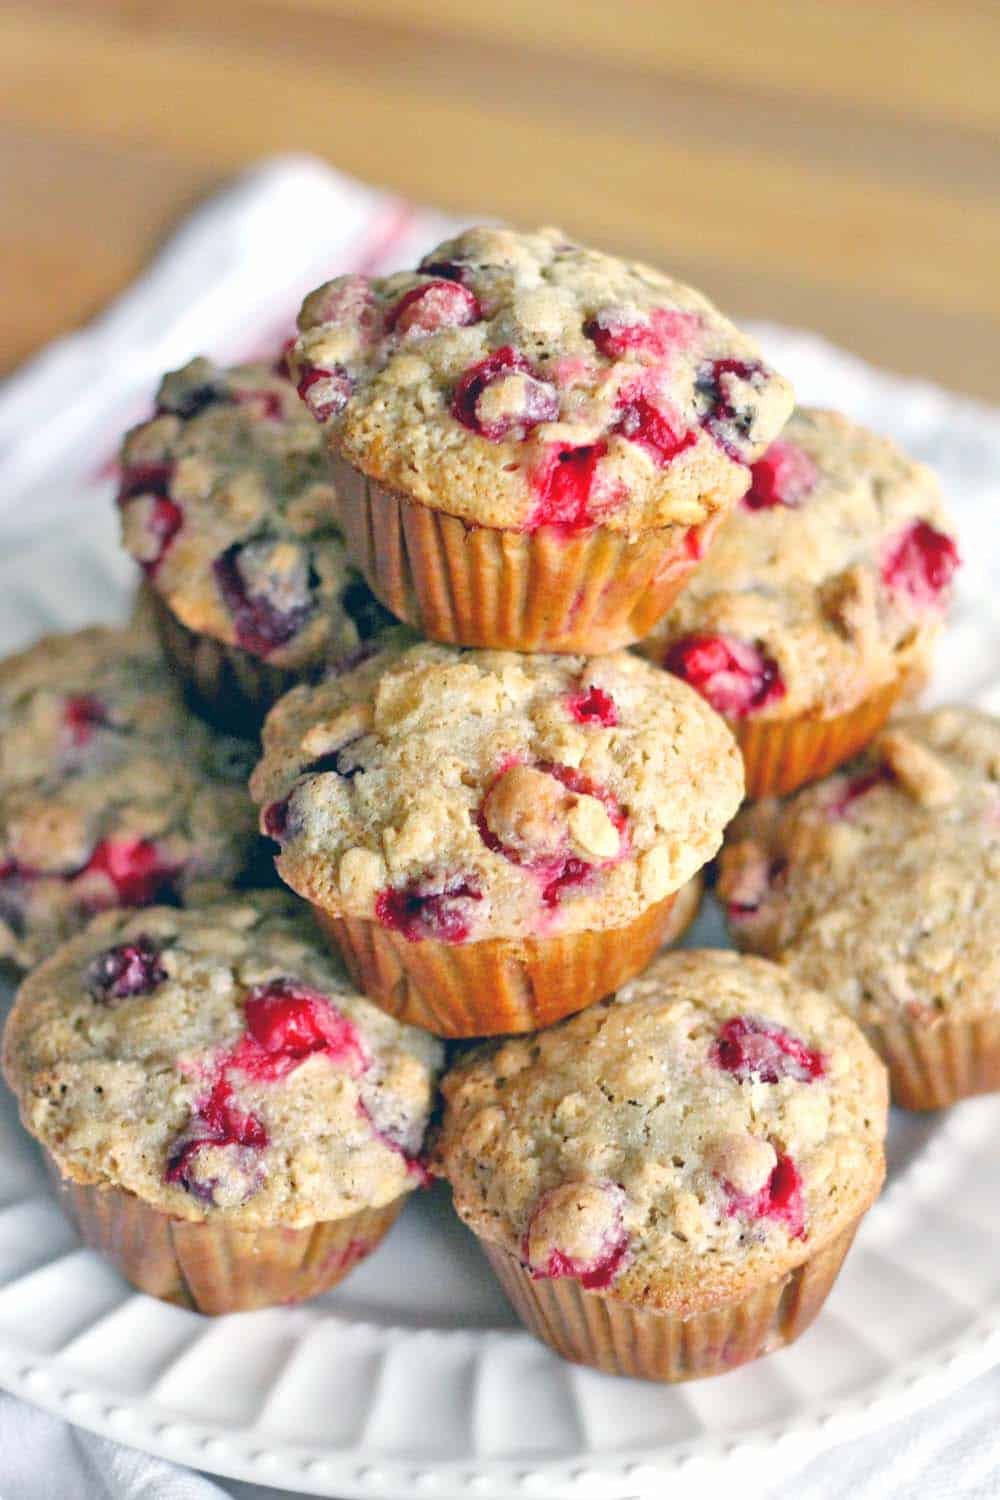 These whole wheat cranberry ginger pecan muffins are healthy, hearty, and oh so tasty! Perfect for Christmas morning, using the leftover fresh cranberries from Thanksgiving you have stored in your freezer!